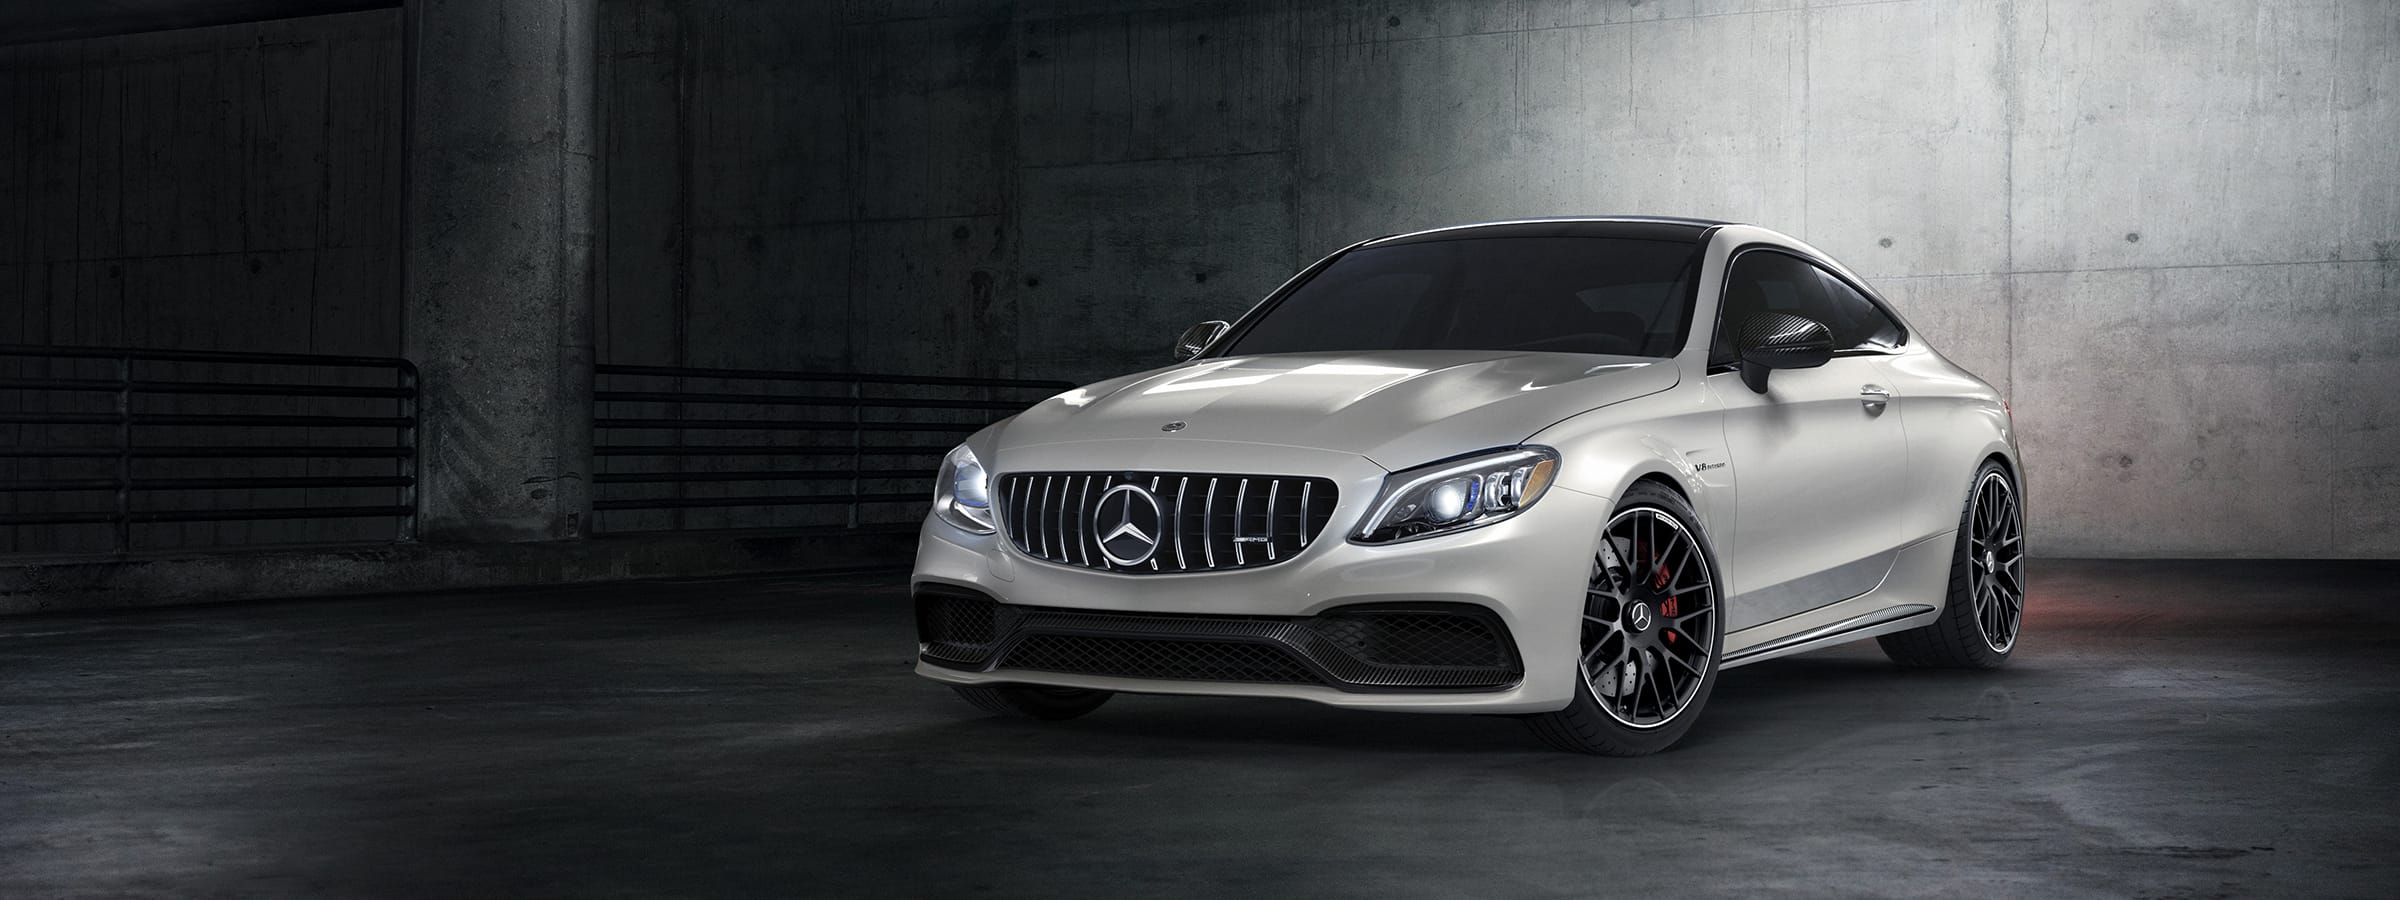 Mercedes Amg Amg C Class Luxury Performance Coupe Mercedes Benz Mercedes